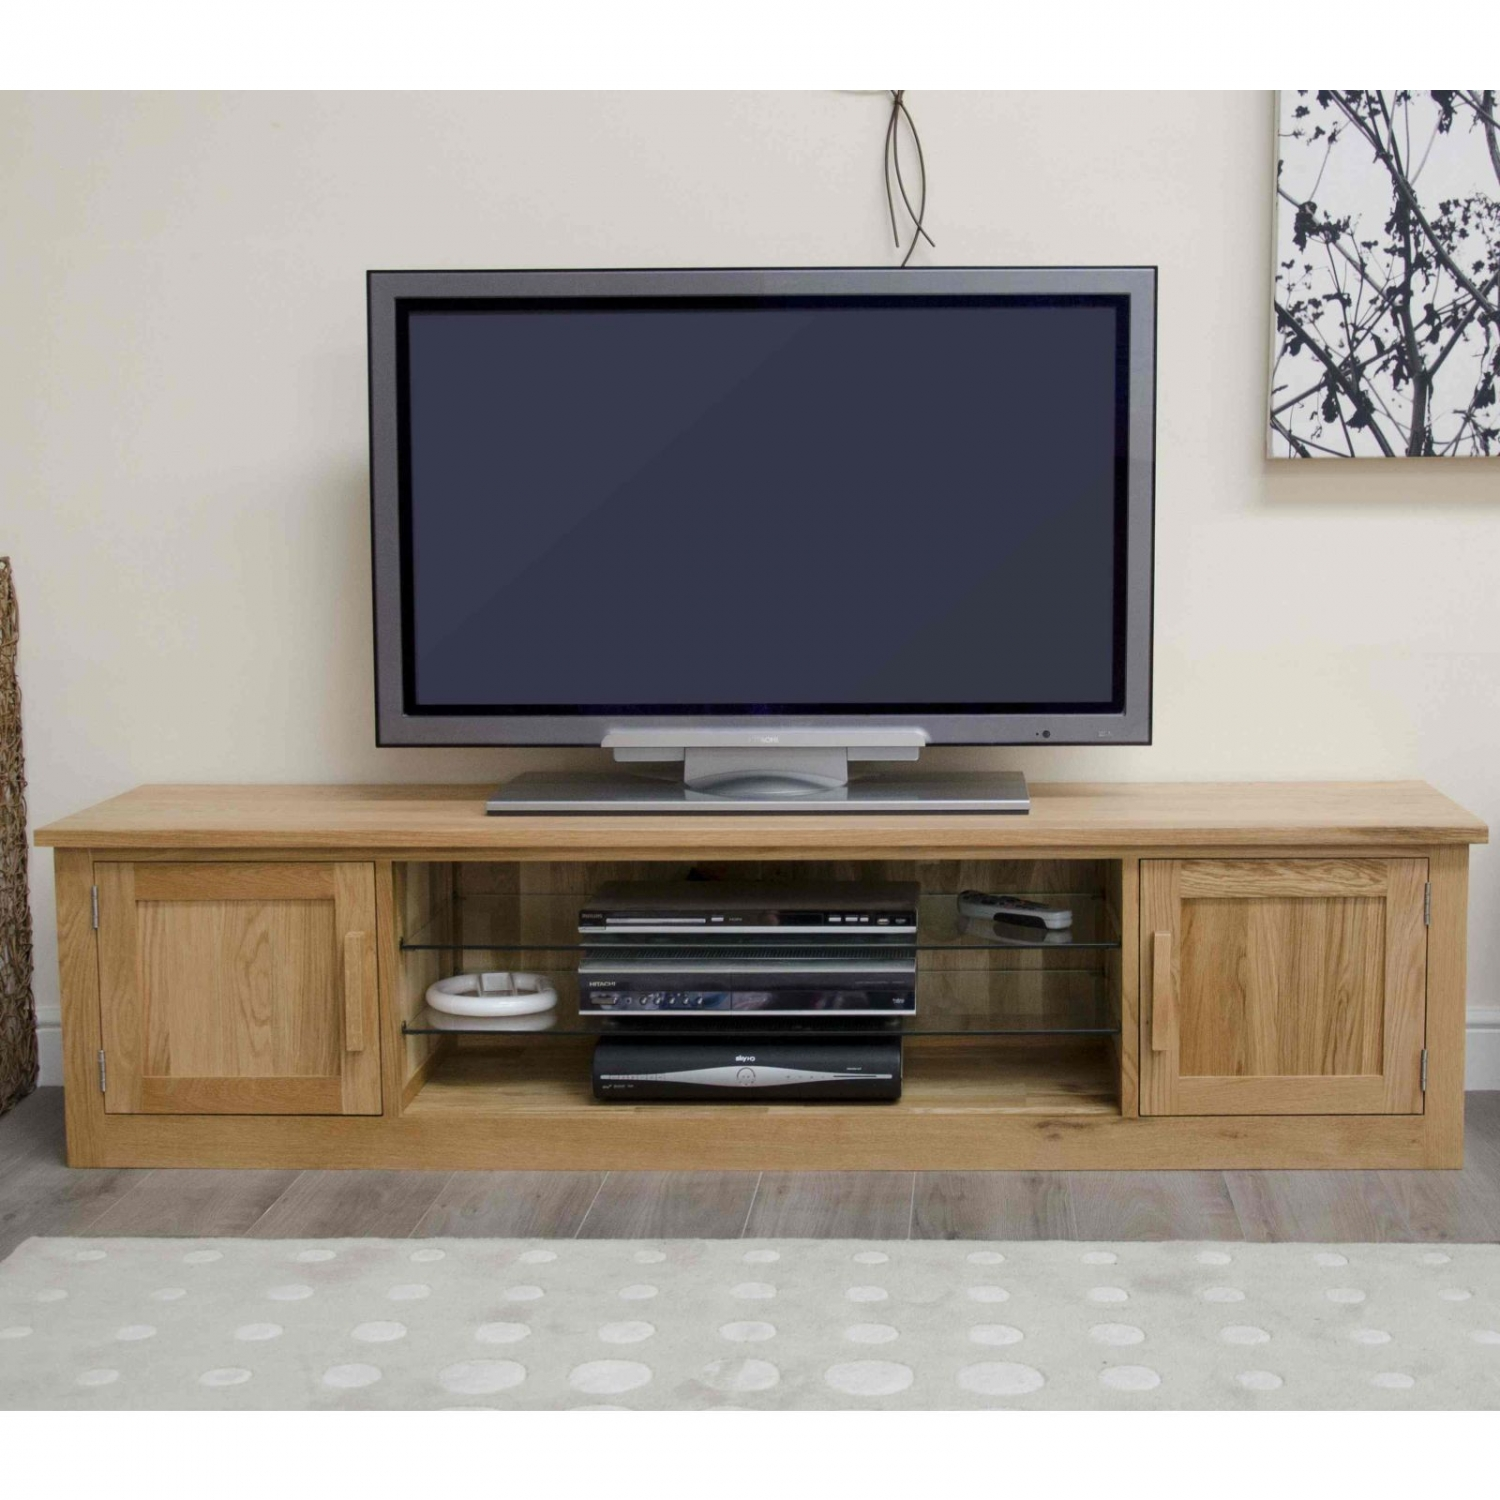 Arden Solid Oak Living Room Furniture Large Widescreen Tv Cabinet Stand Unit